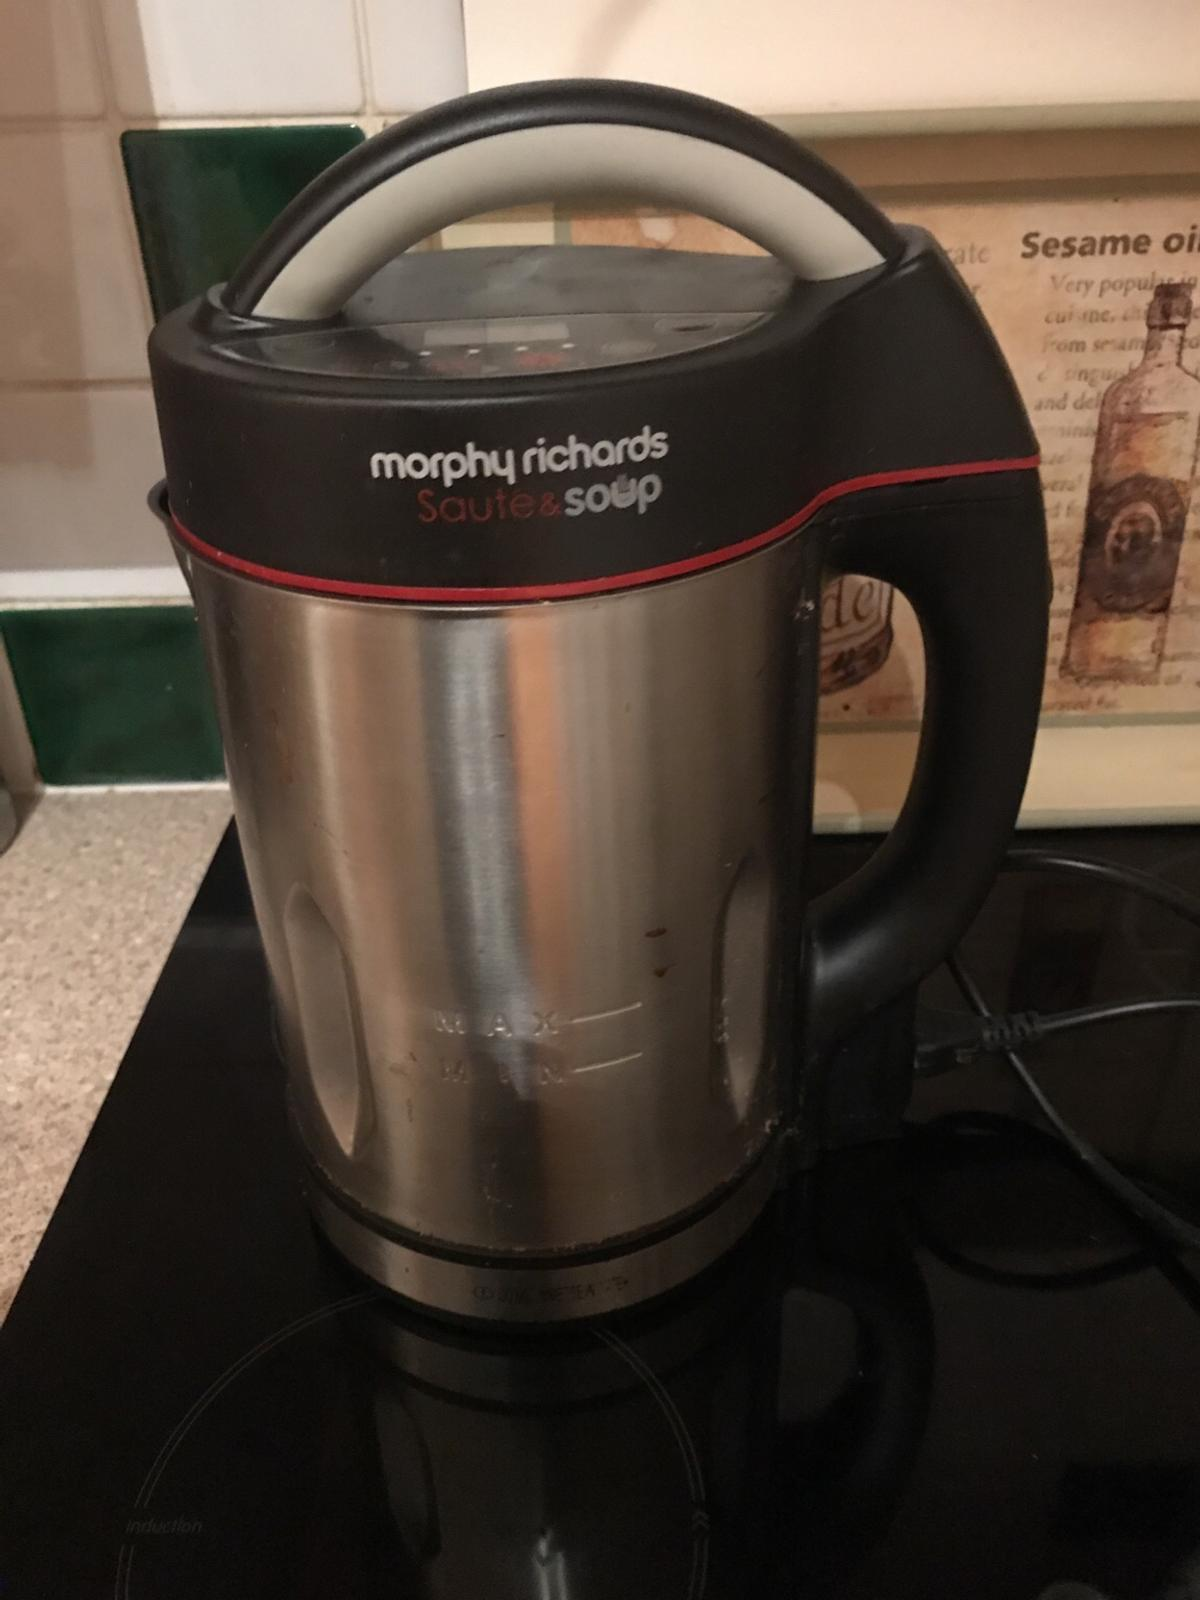 Morphy Richards Soup Maker In Sw18 Wandsworth For 19 99 For Sale Shpock Just pick your setting and set the timer, and the soup maker's sound signal will let you know when it's done. morphy richards soup maker